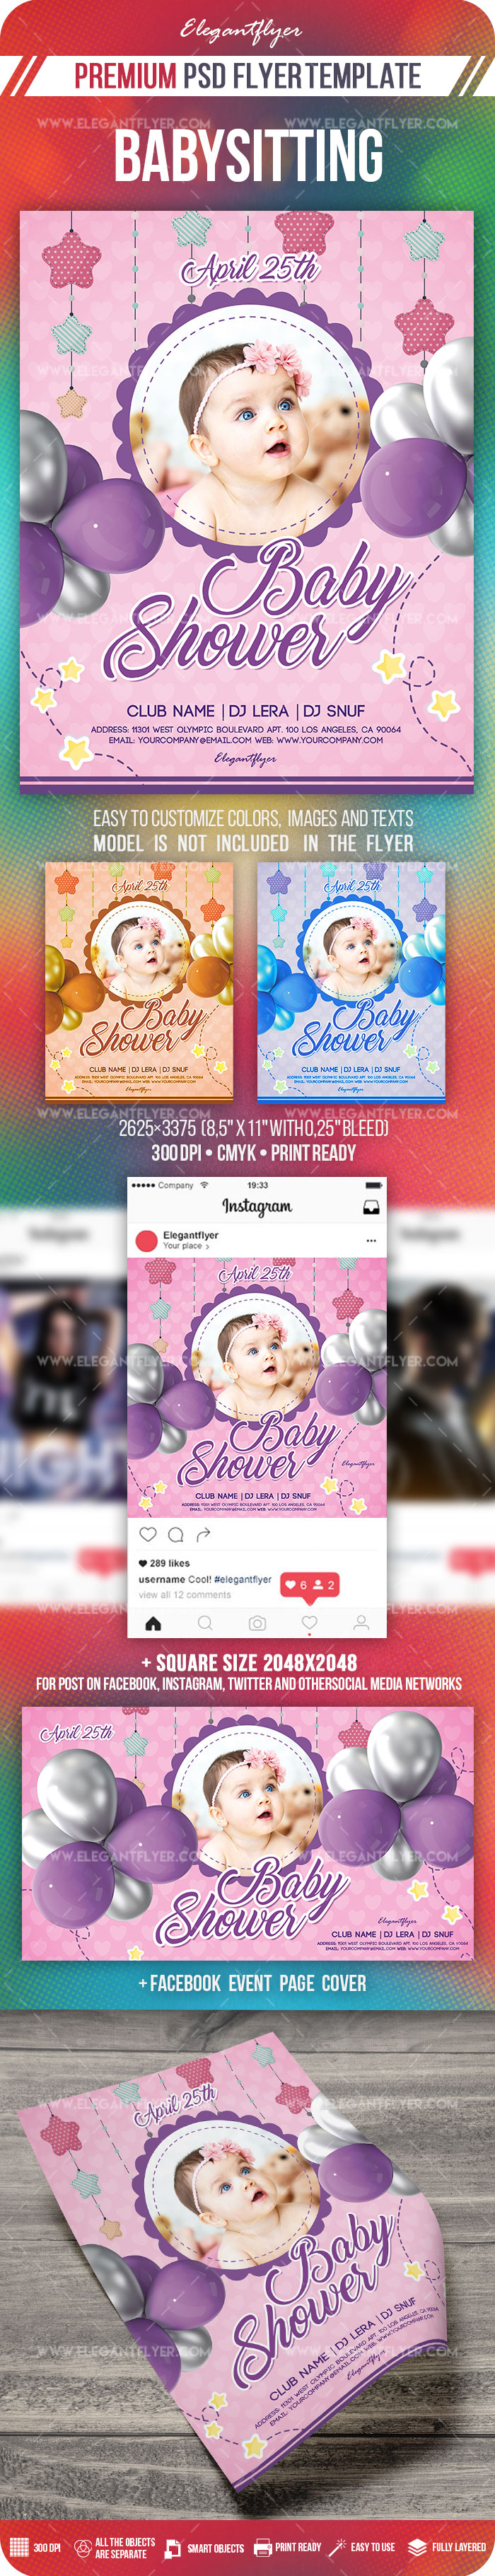 Baby Shower Party – Flyer PSD Template + Facebook Cover + Instagram Post